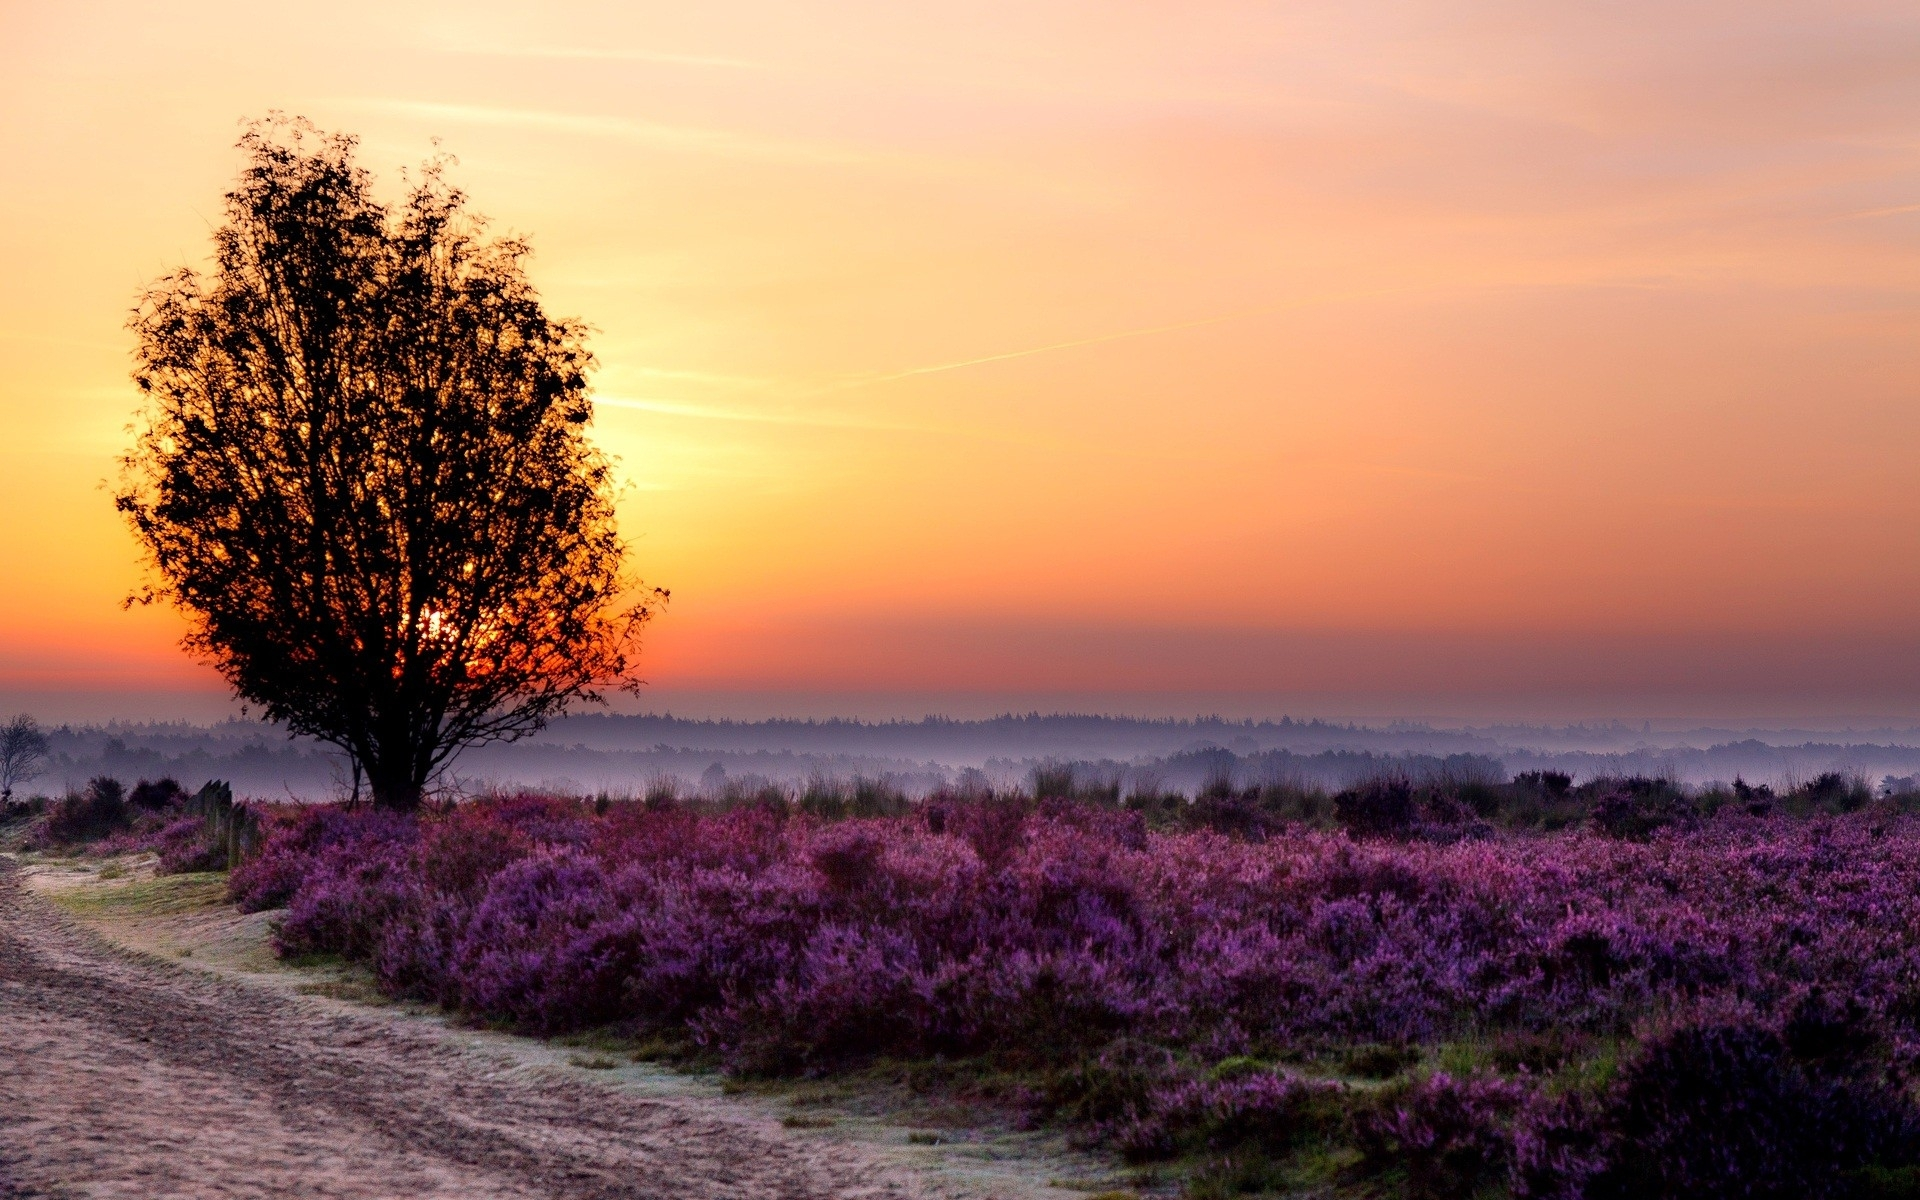 Beautiful Quotes Wallpaper For Facebook Purple Flower Field Tree Amp Way Wallpapers Purple Flower